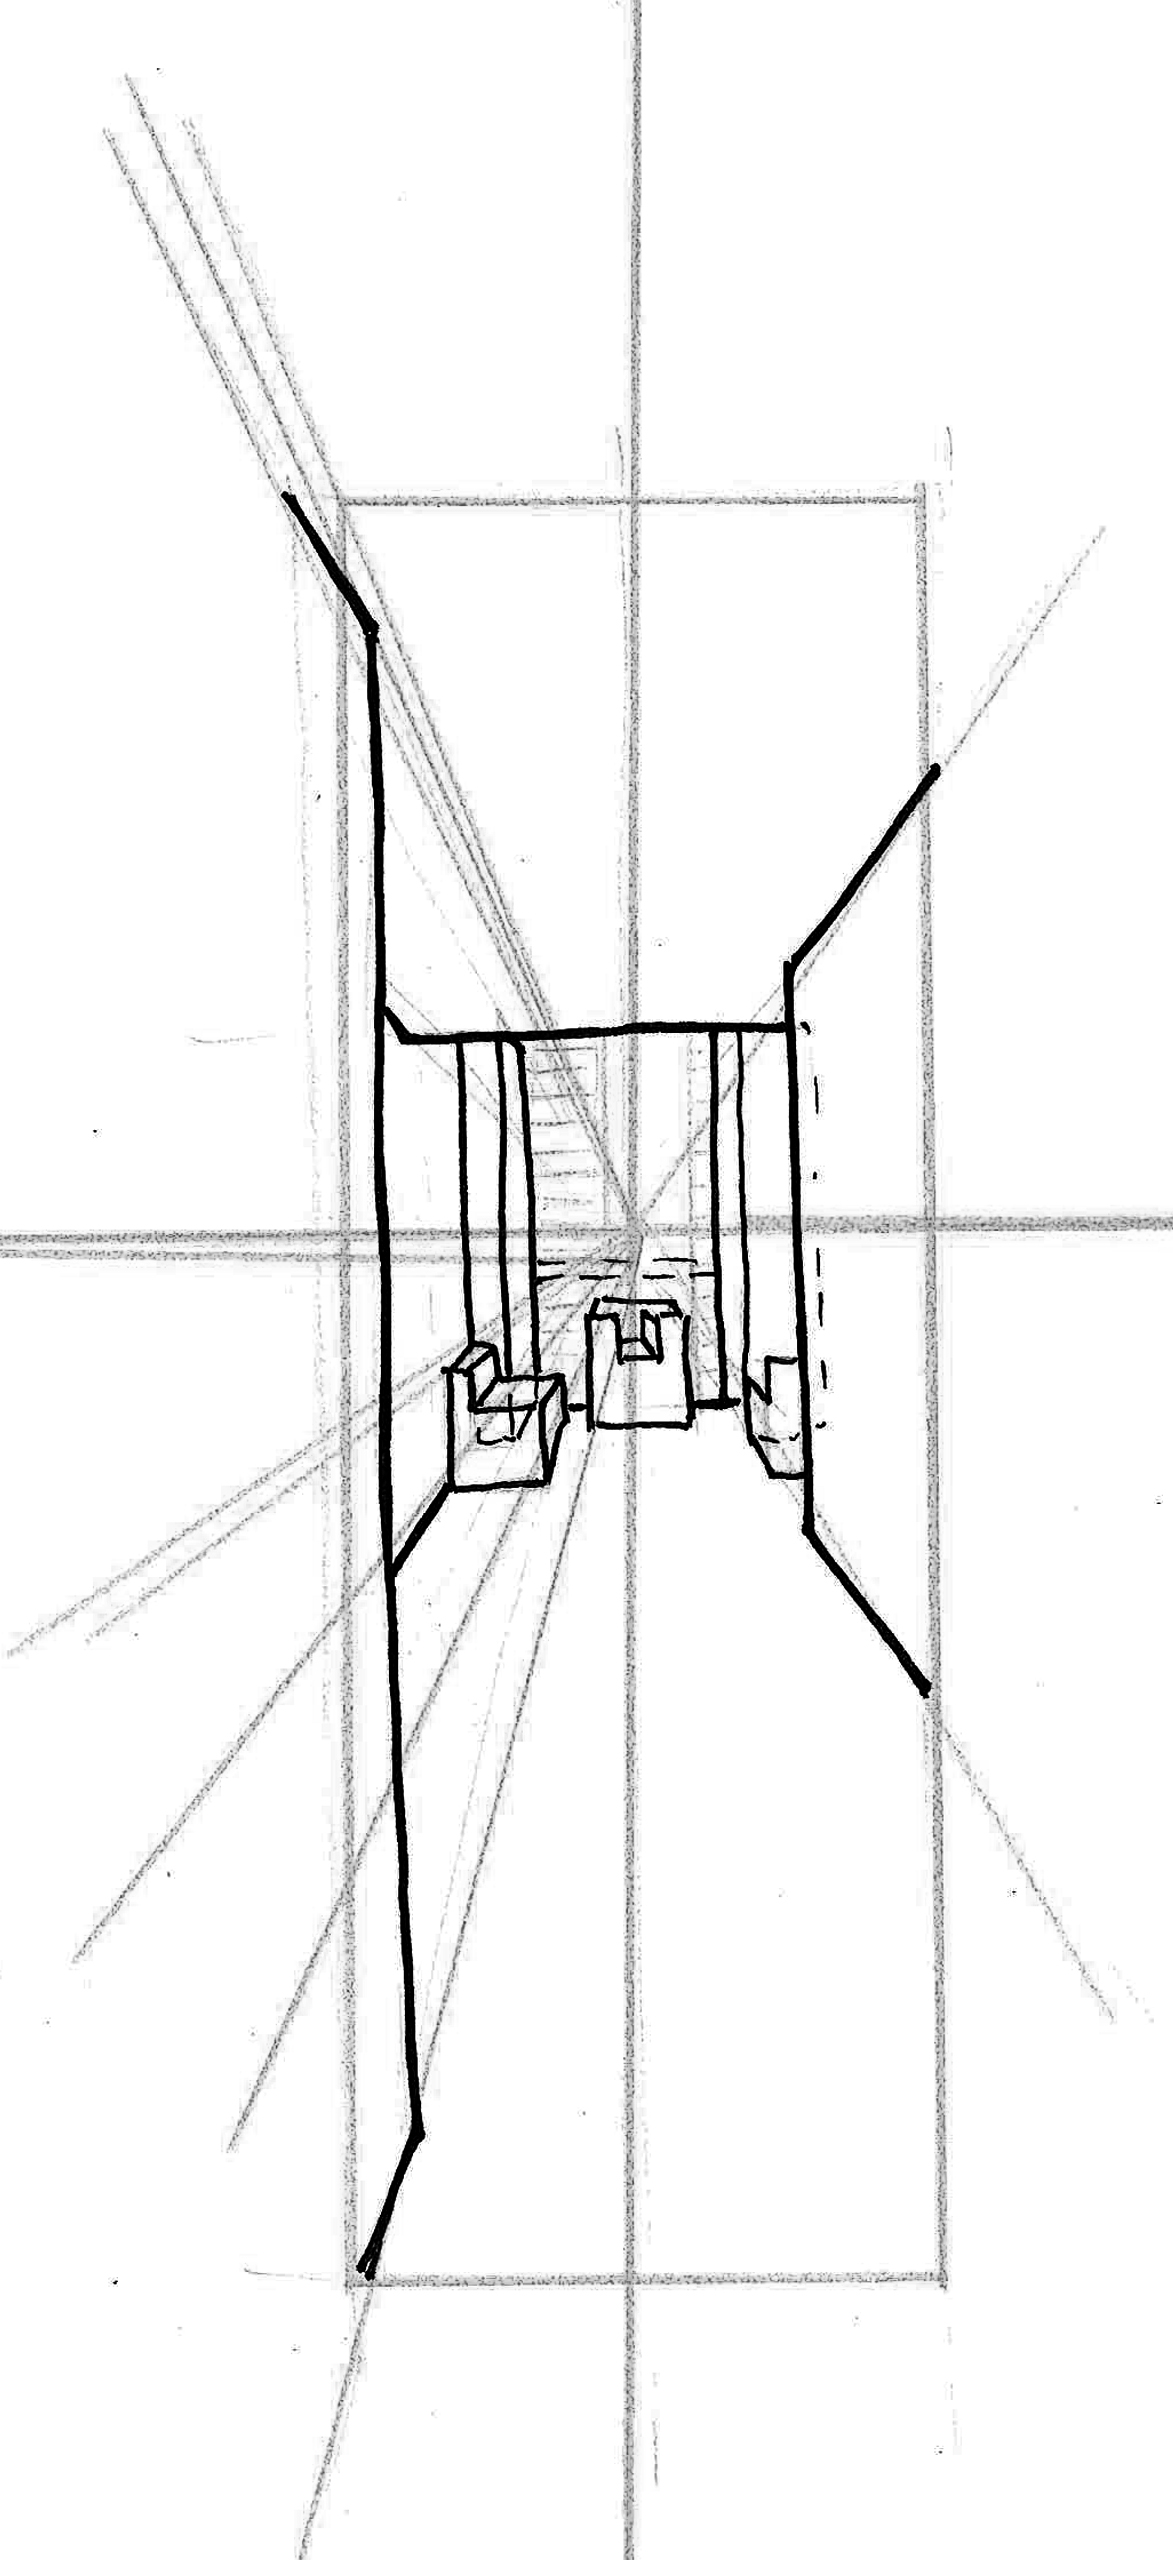 perspective8